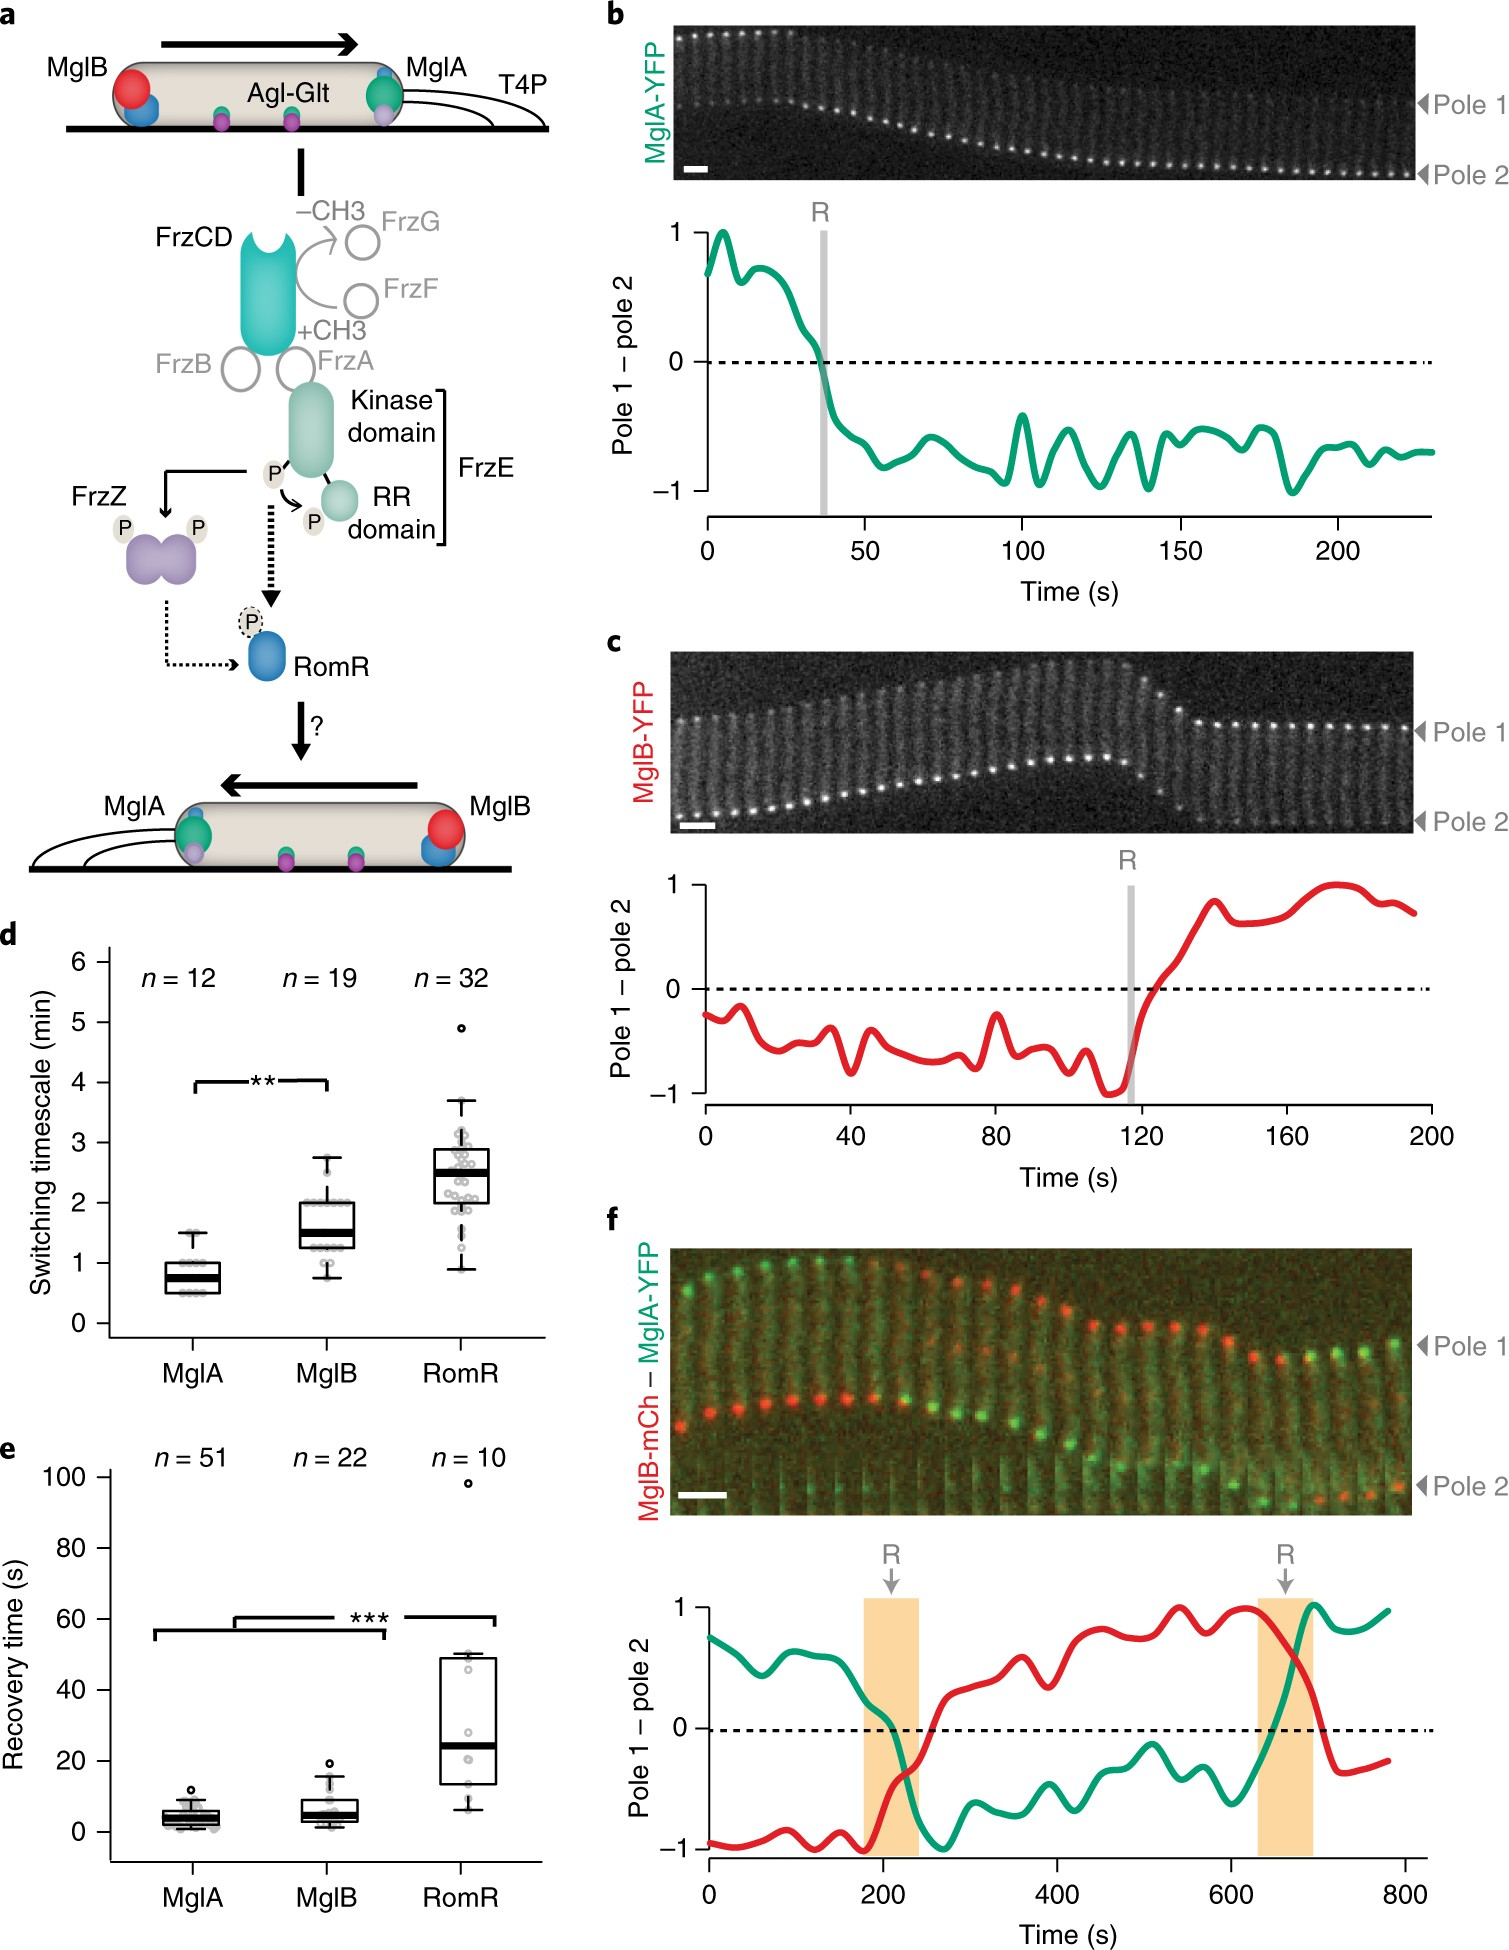 A gated relaxation oscillator mediated by FrzX controls